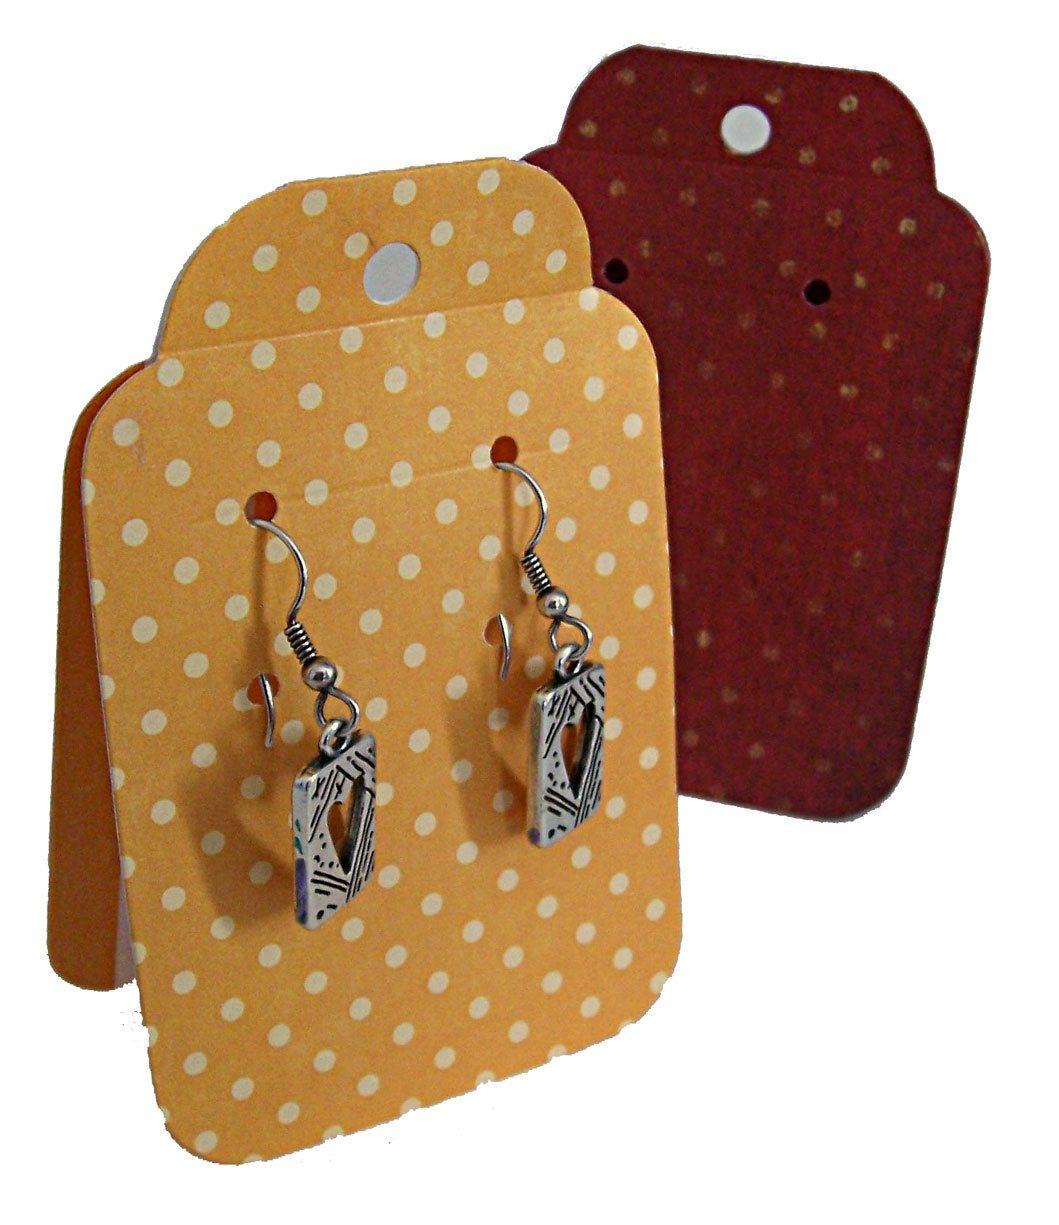 Stand Up Tent Earring Display Cards By Wildabouttags On Etsy